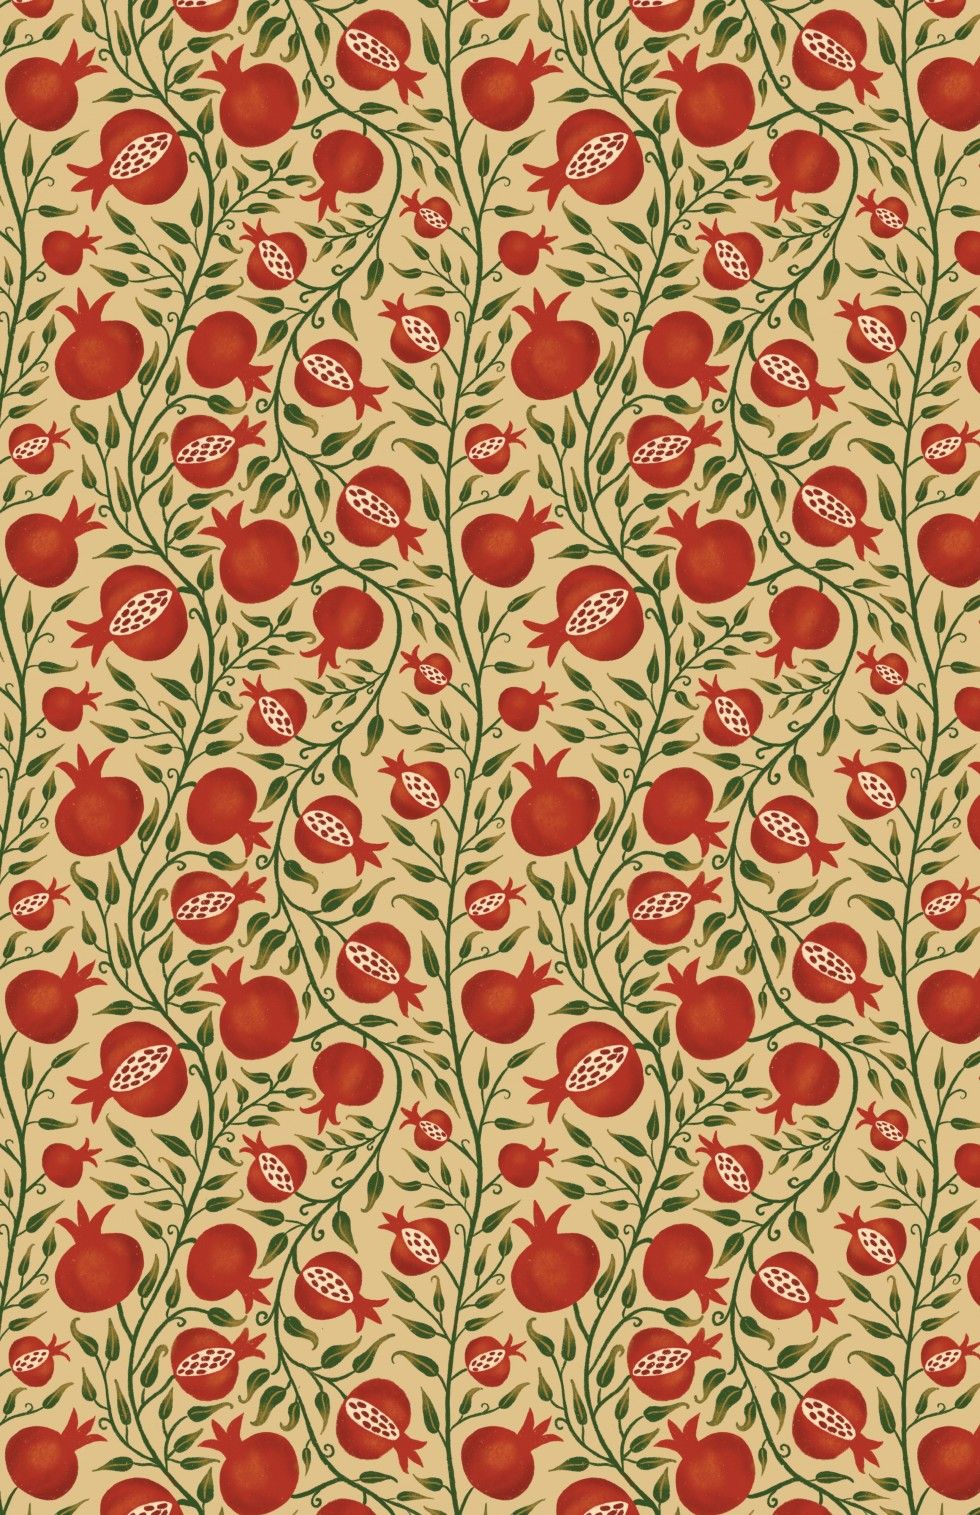 There are three repeating patterns that are red, green, white, and yellow. The first pattern is winding vines with pomegranate fruit growing out of them. The second pattern has European folk style flowers with swords and bows and arrows mixed in. The thir